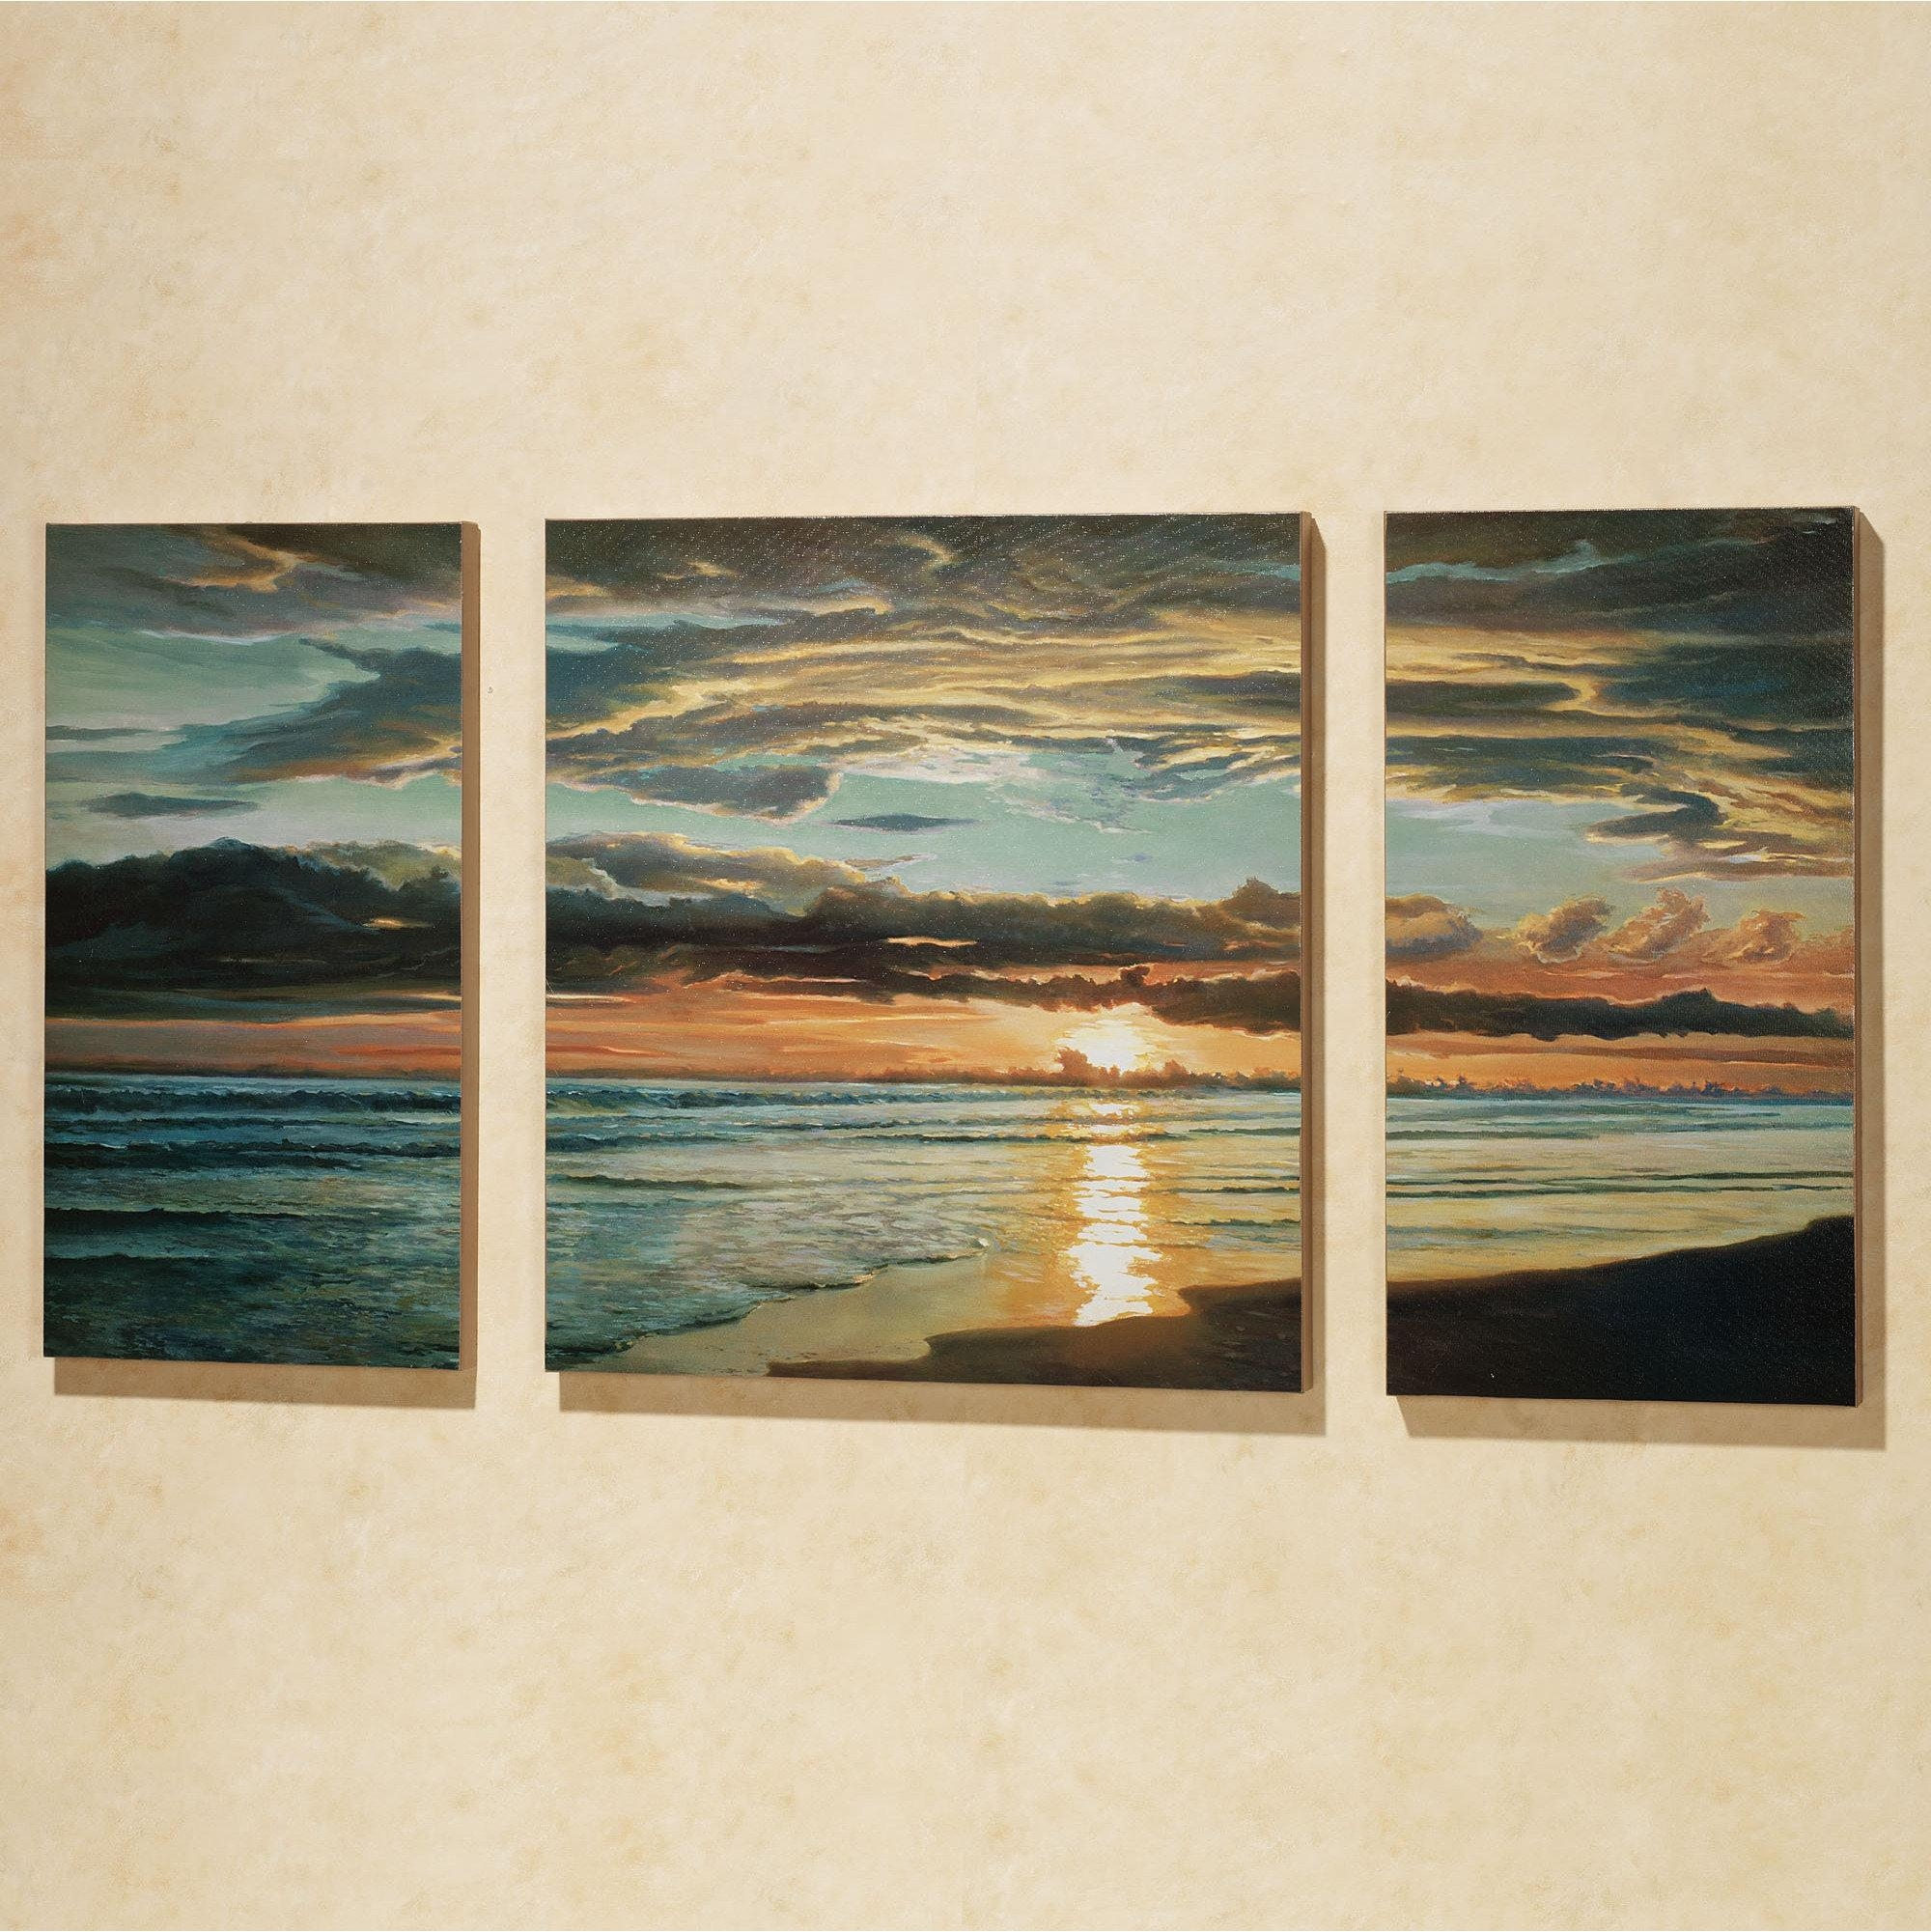 Wall Art Designs: Modern Designing Triptych Wall Art Canvas For Within Large Triptych Wall Art (Image 16 of 20)